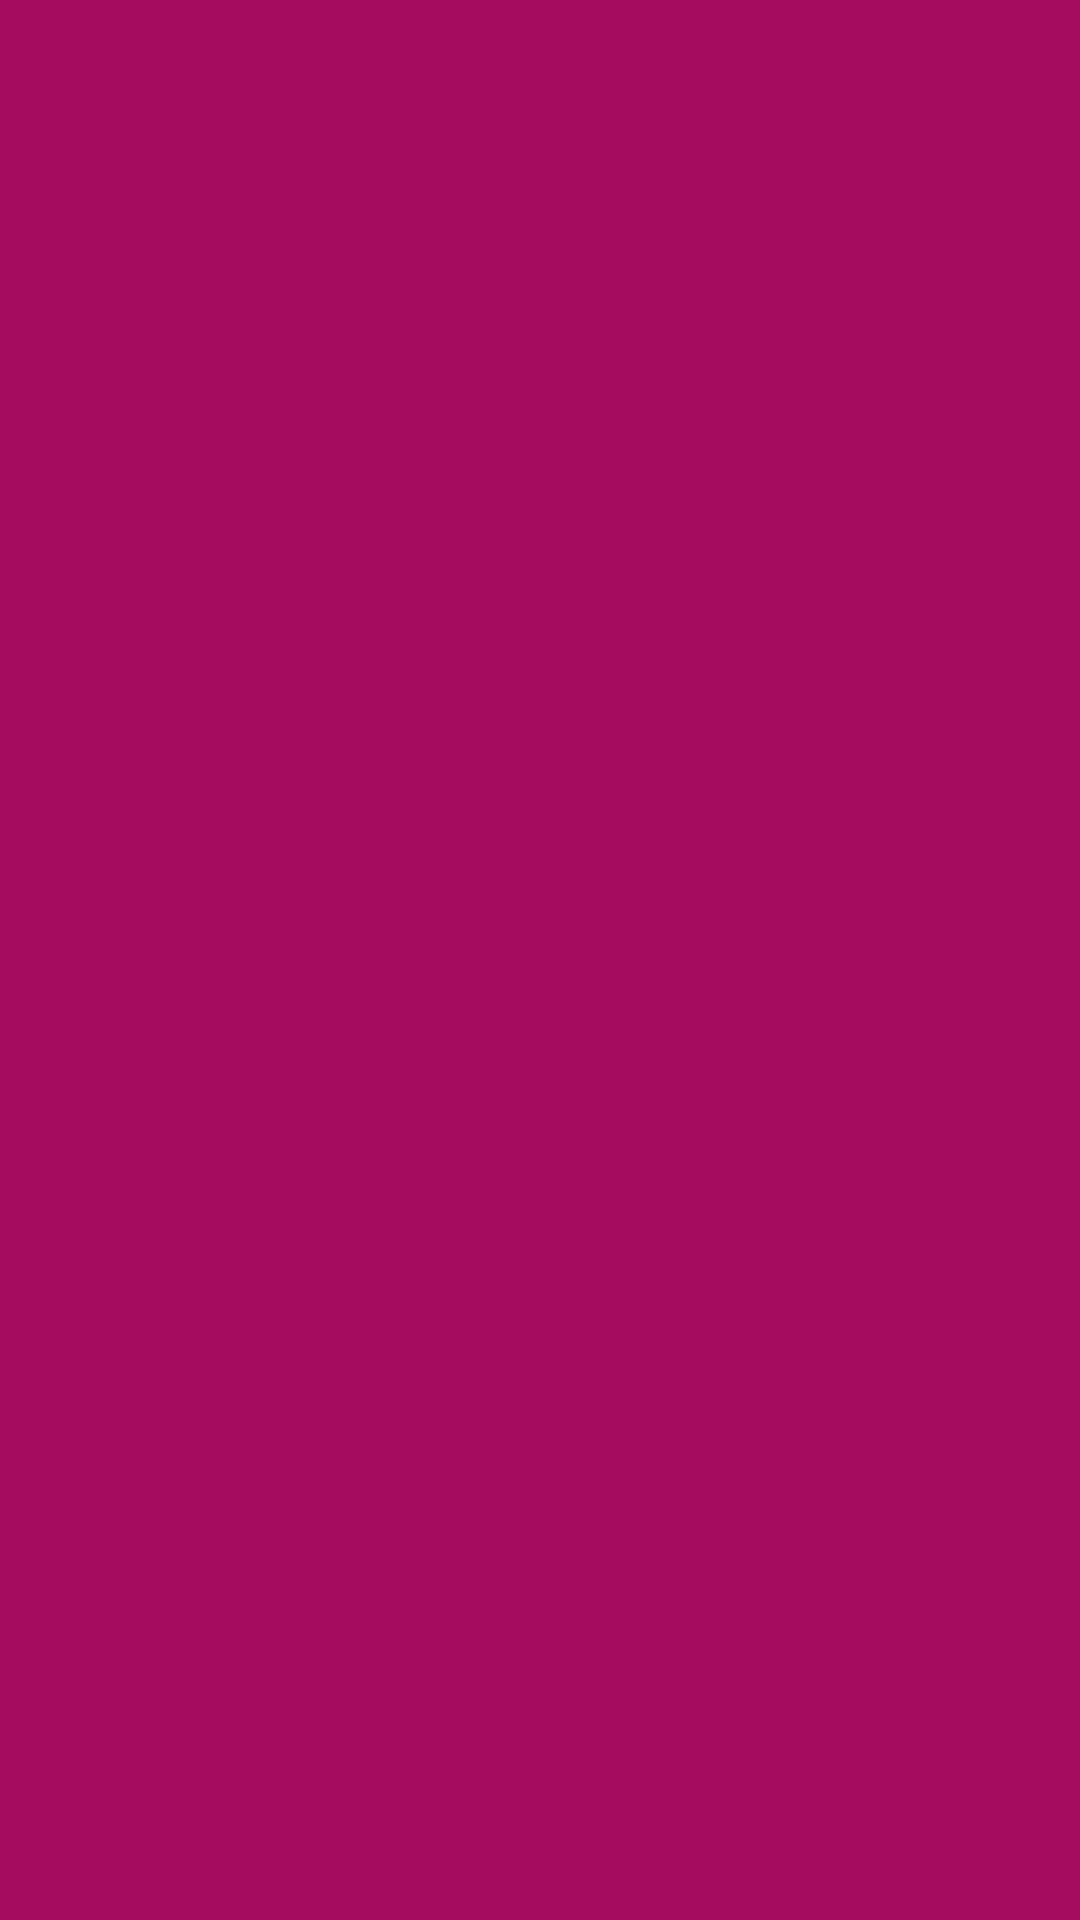 1080x1920 Jazzberry Jam Solid Color Background